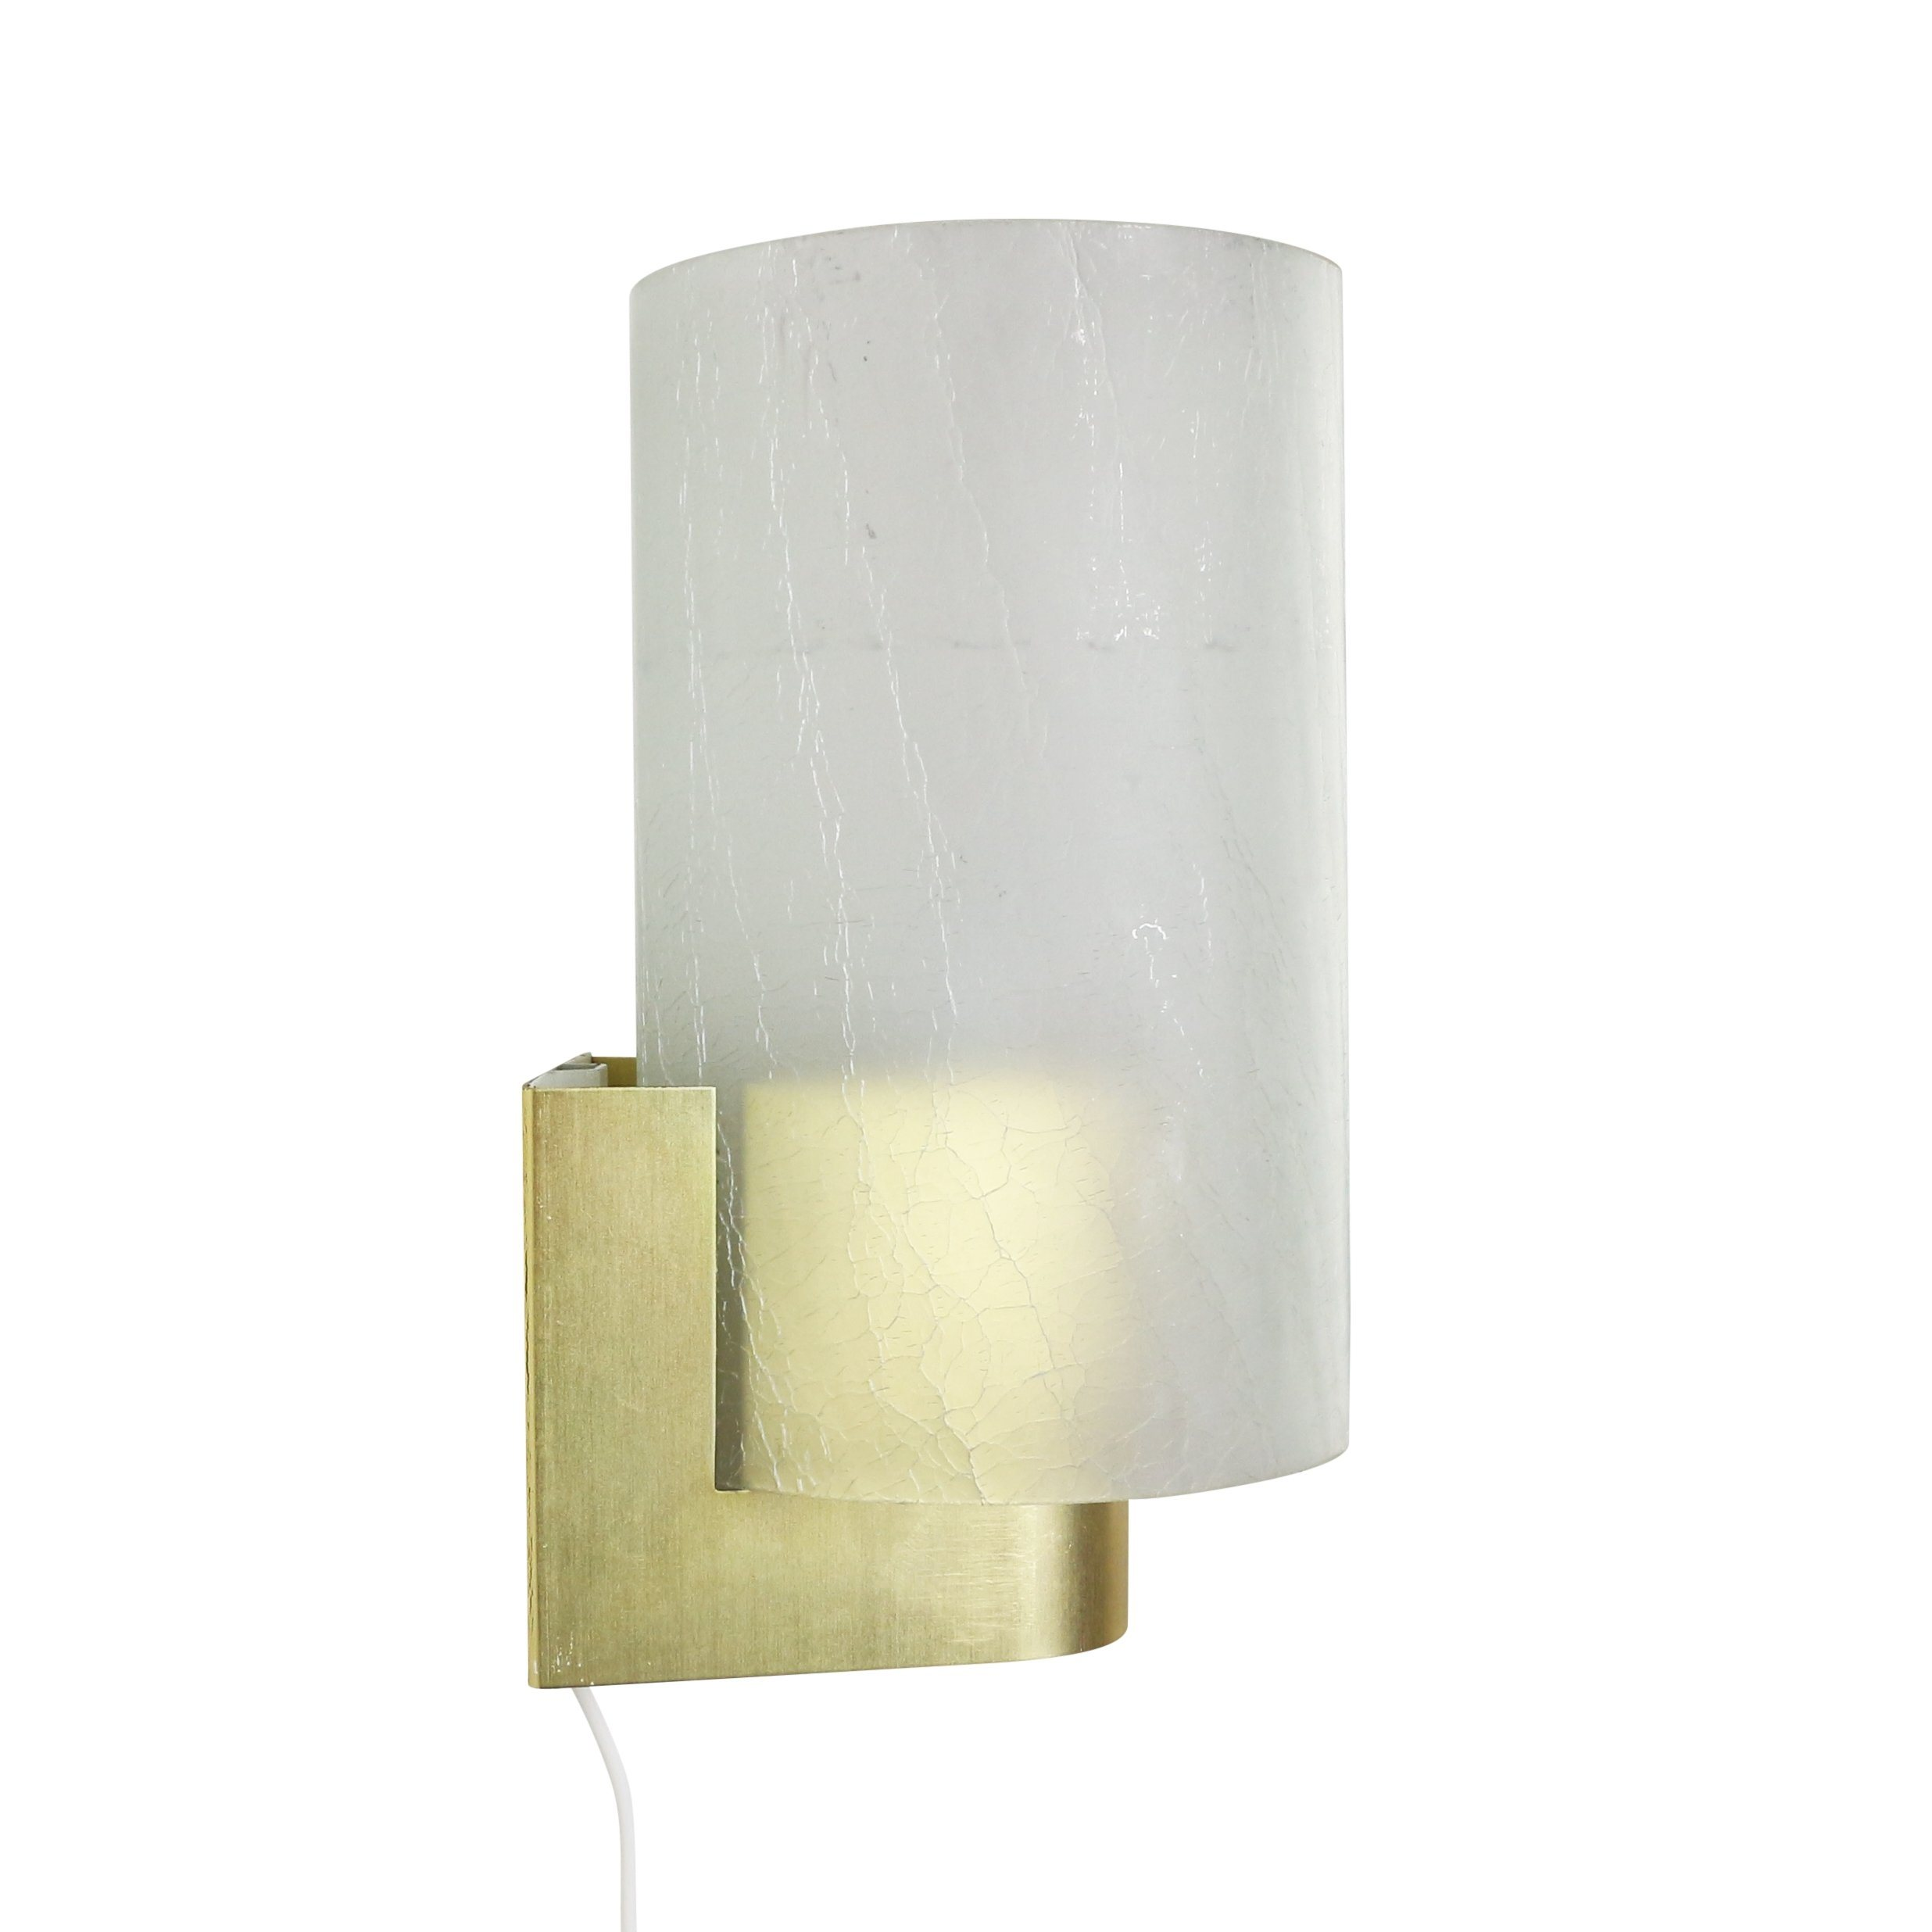 Modern wall light with frosted glass by philips holland 1960s 1201 modern wall light with frosted glass by philips holland 1960s aloadofball Choice Image